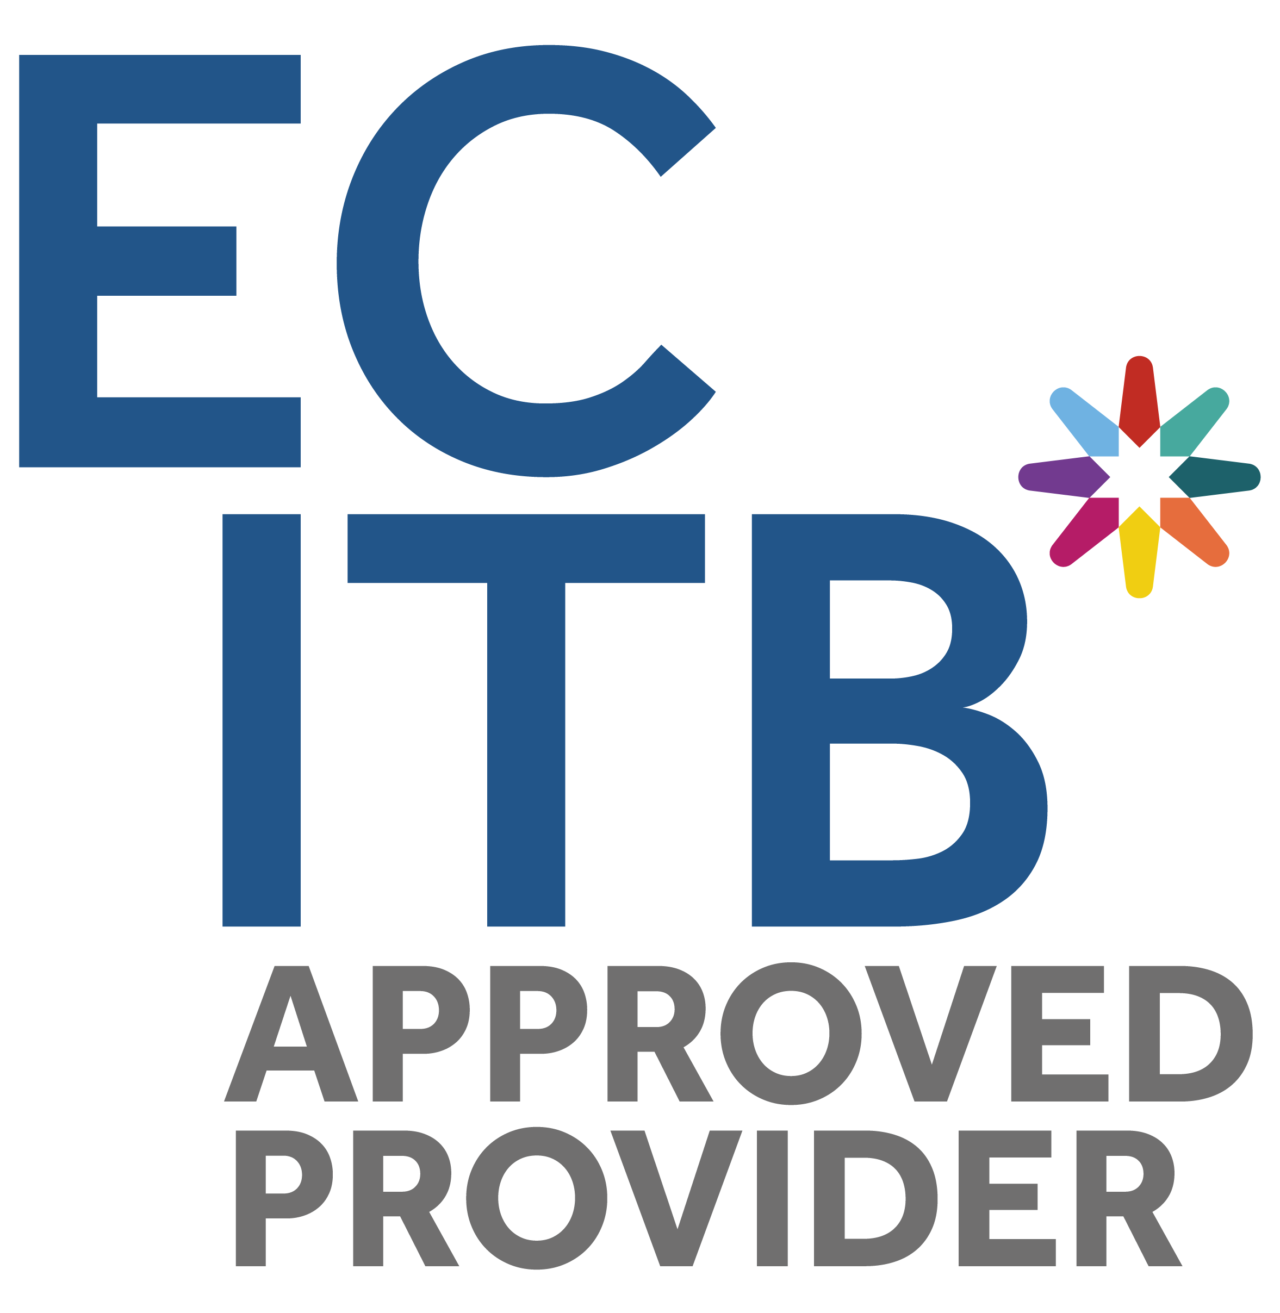 Approved-Provider-Logo-01-1280x1313.png